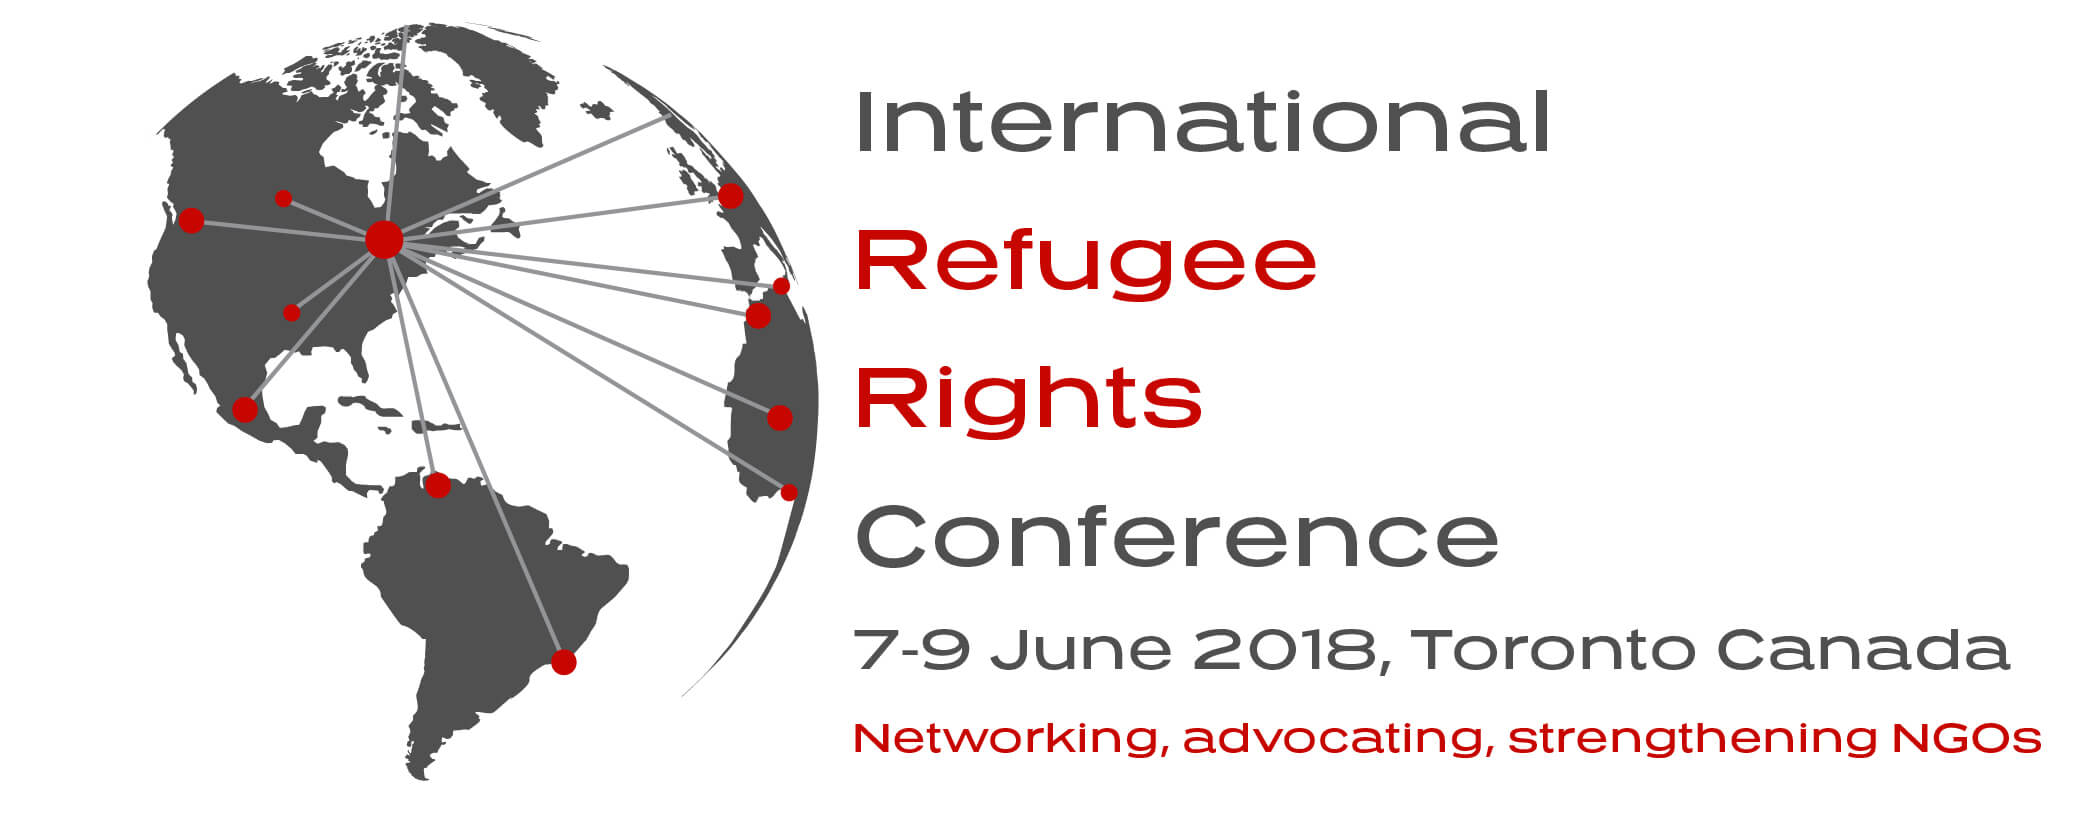 Arash Bordbar was one of the key note speakers at the Canadian Refugee Council Congress, Toronto 6-8 June 2018